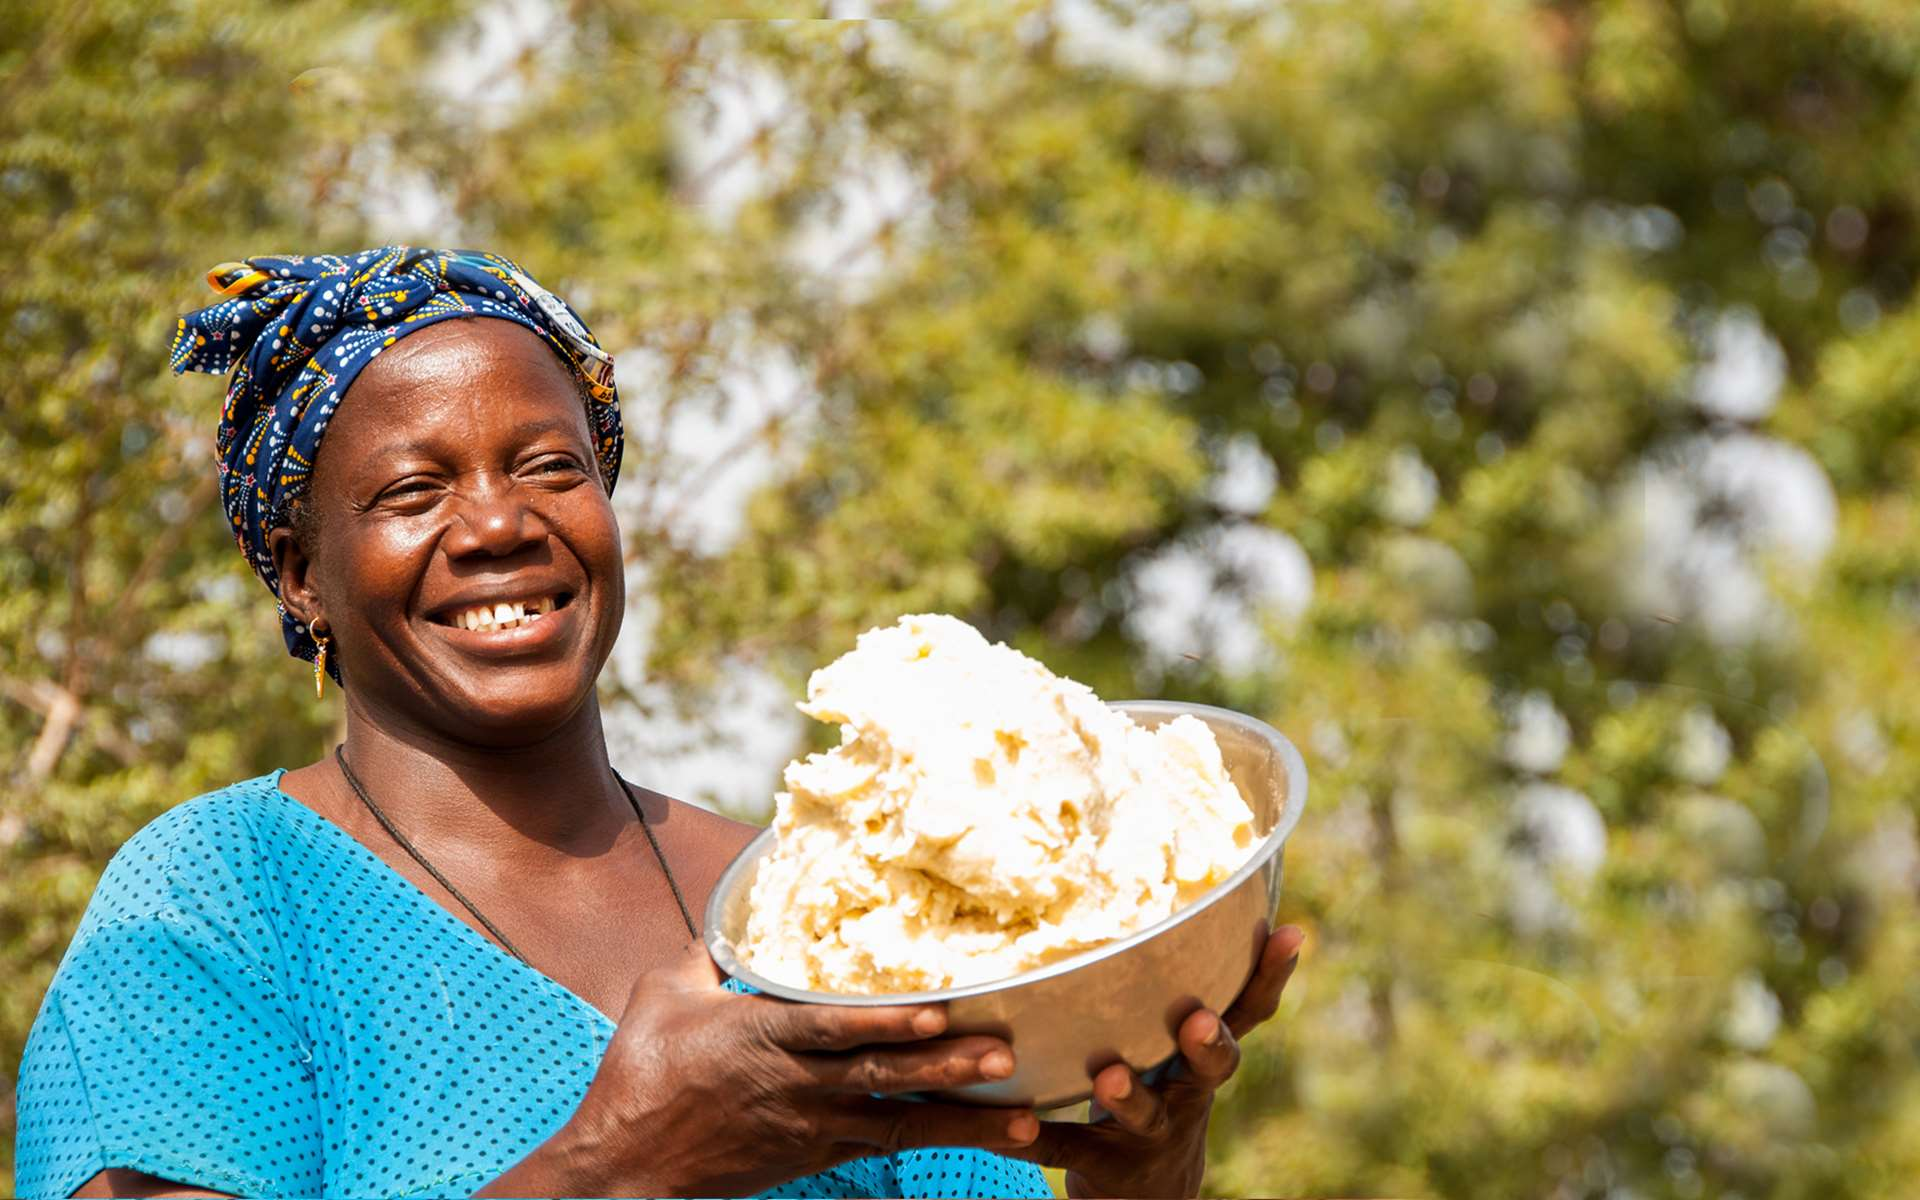 Bernadette, a member of a shea enterprise group set up through a Tree Aid project, holding shea butter and smiling.